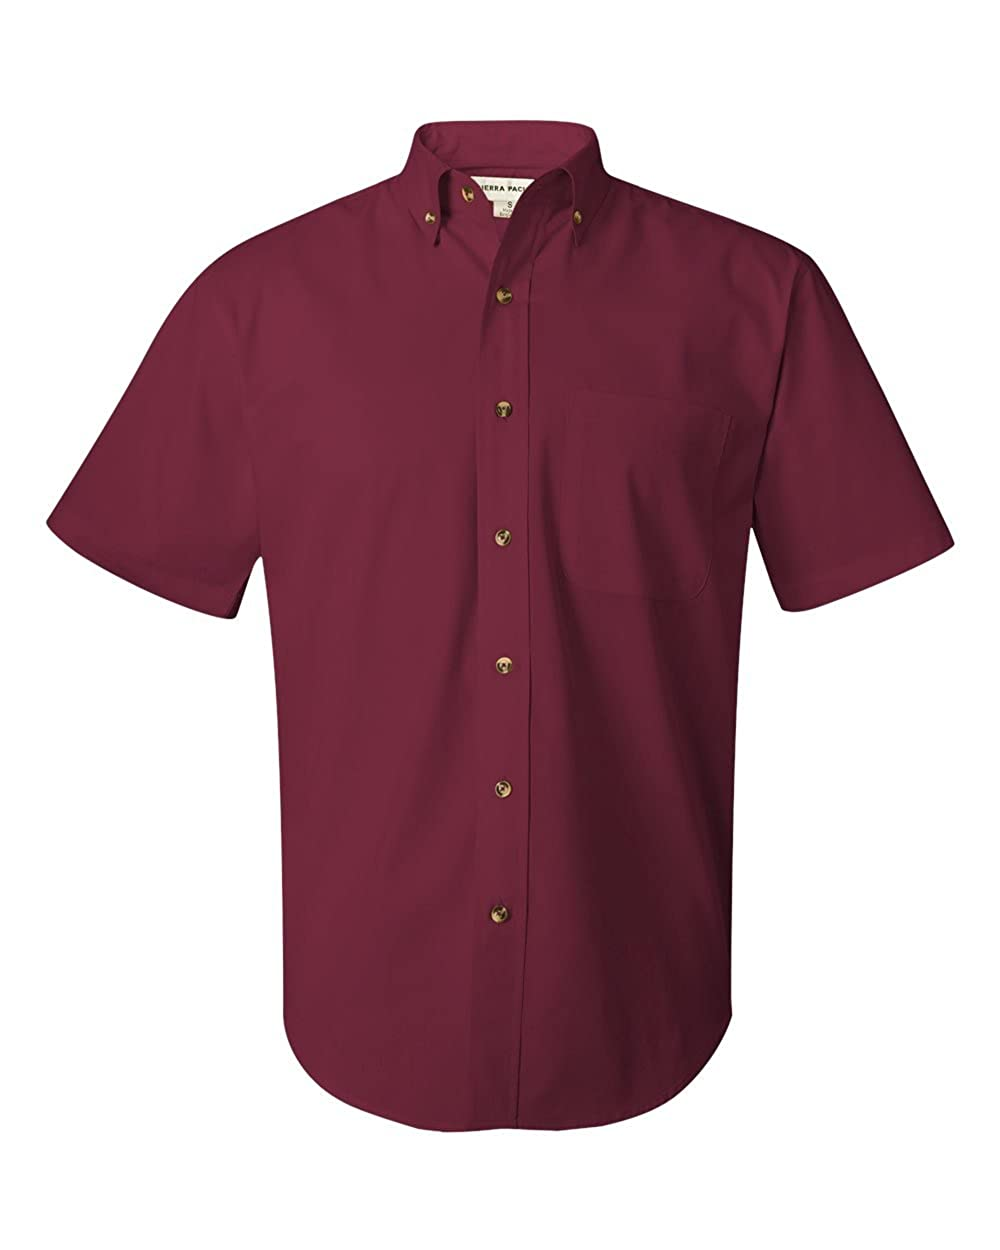 FeatherLite Short Sleeve Stain-Resistant Twill Shirt 0281